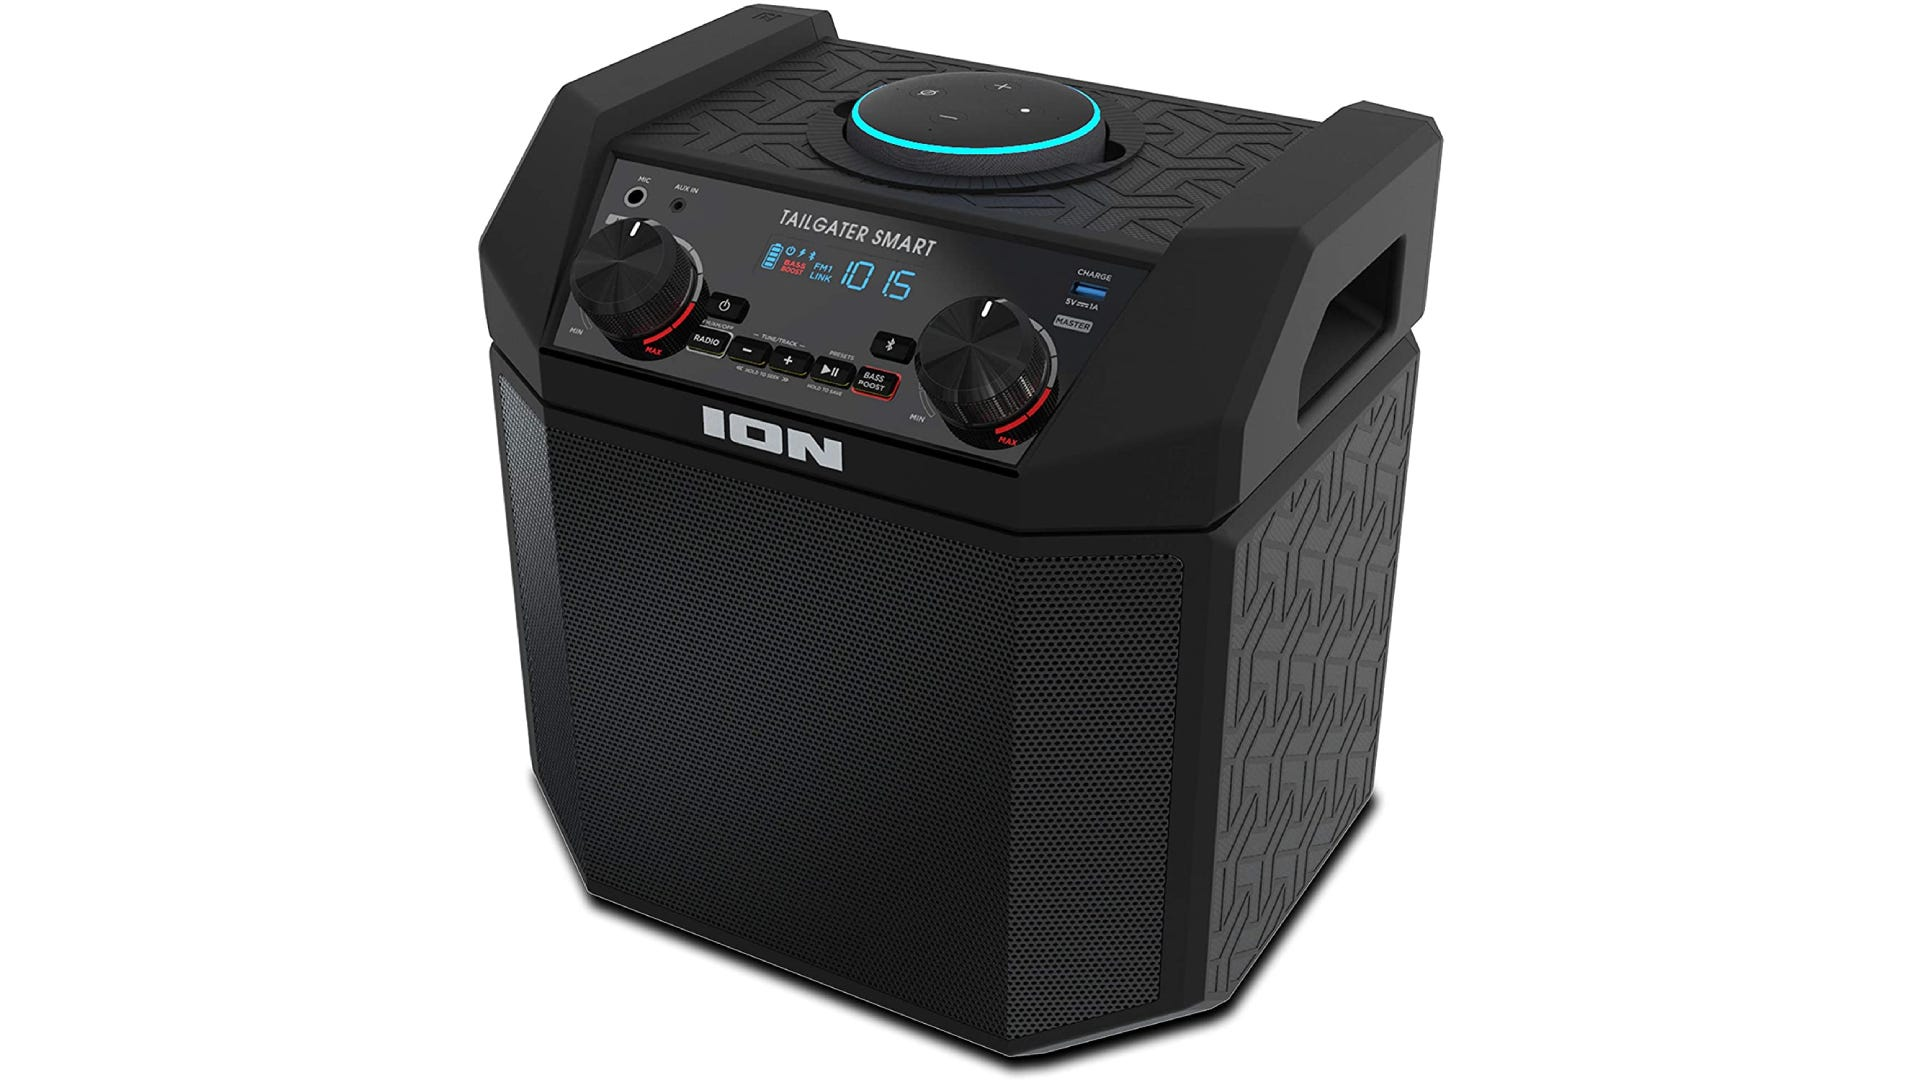 A large black speaker dock that features an Amazon Echo Dot slot at the top.